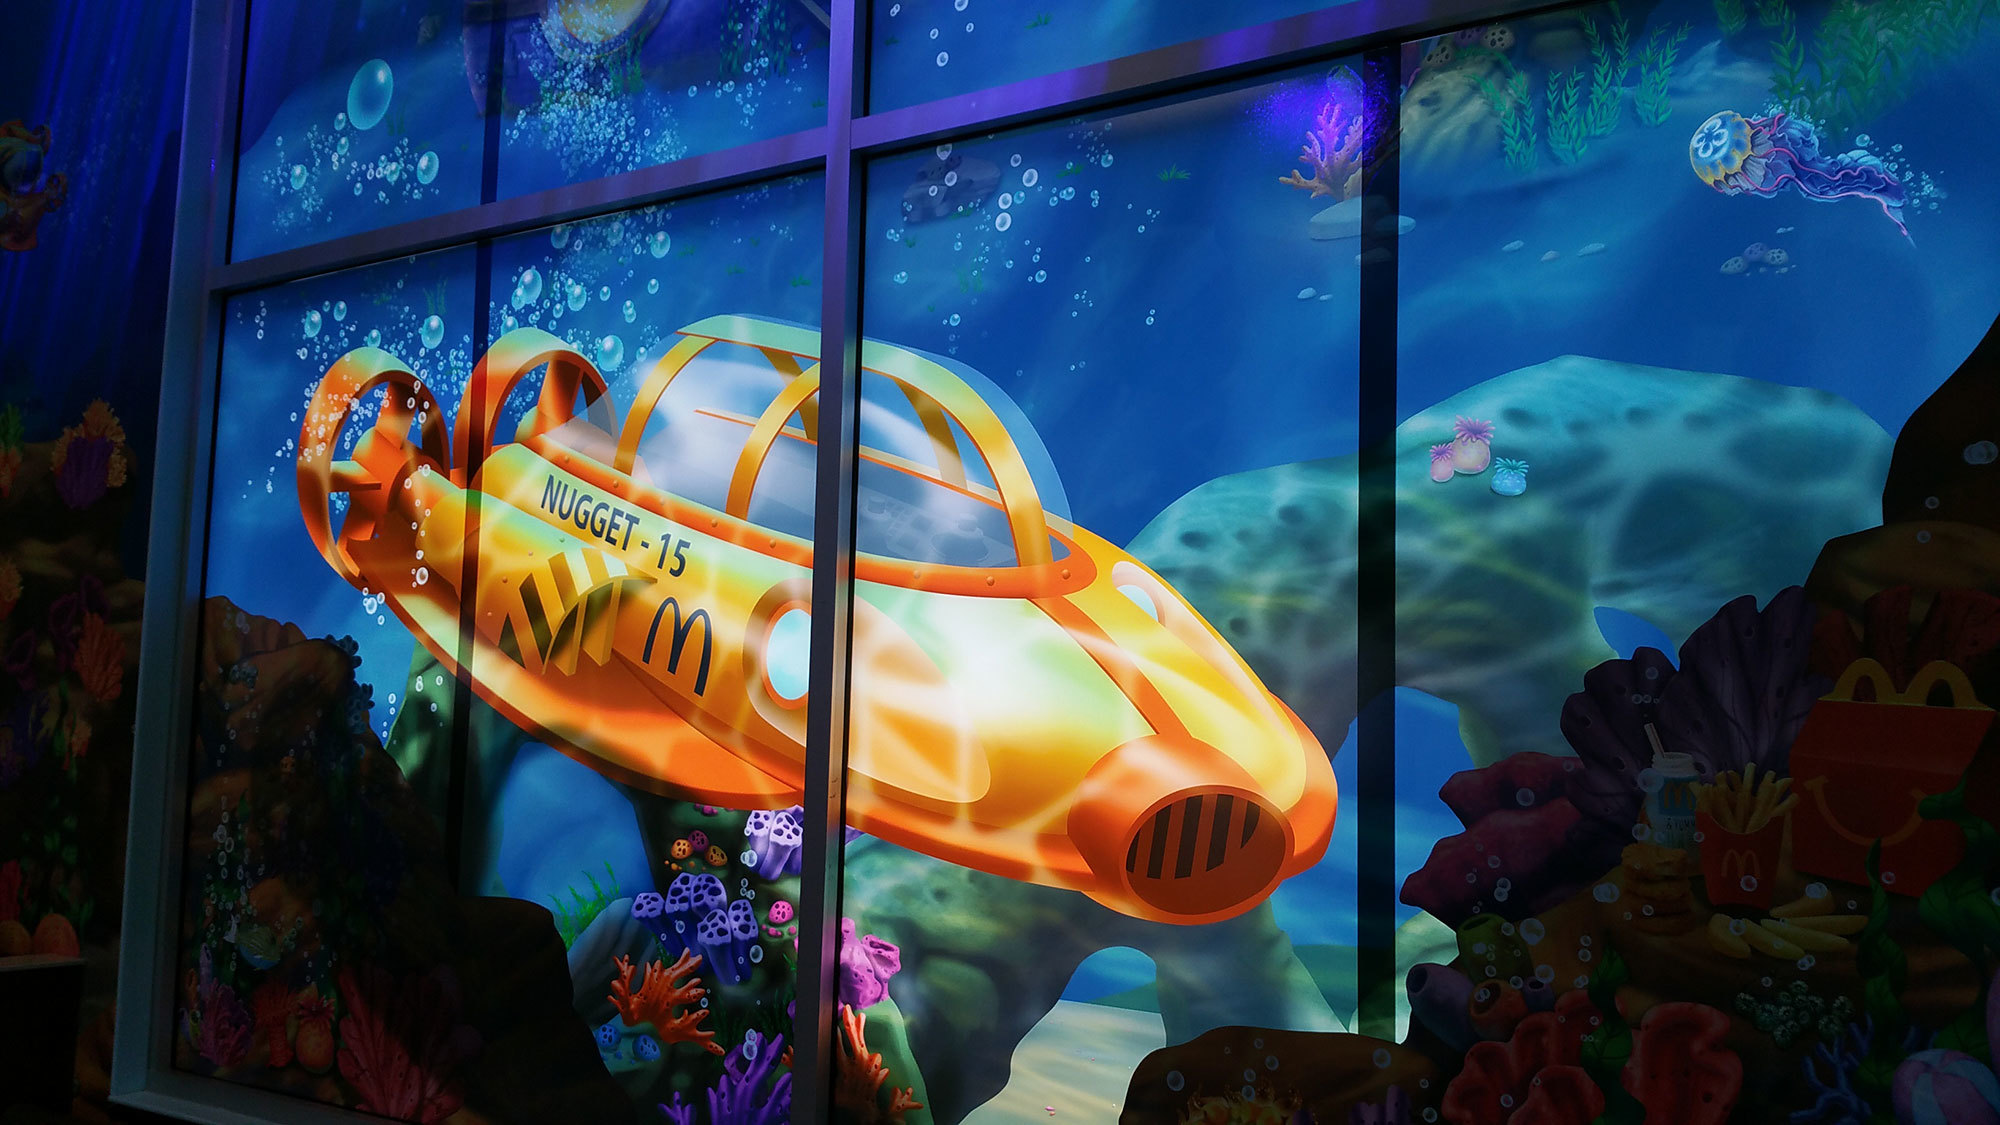 Undersea Themed Space at McDonald's